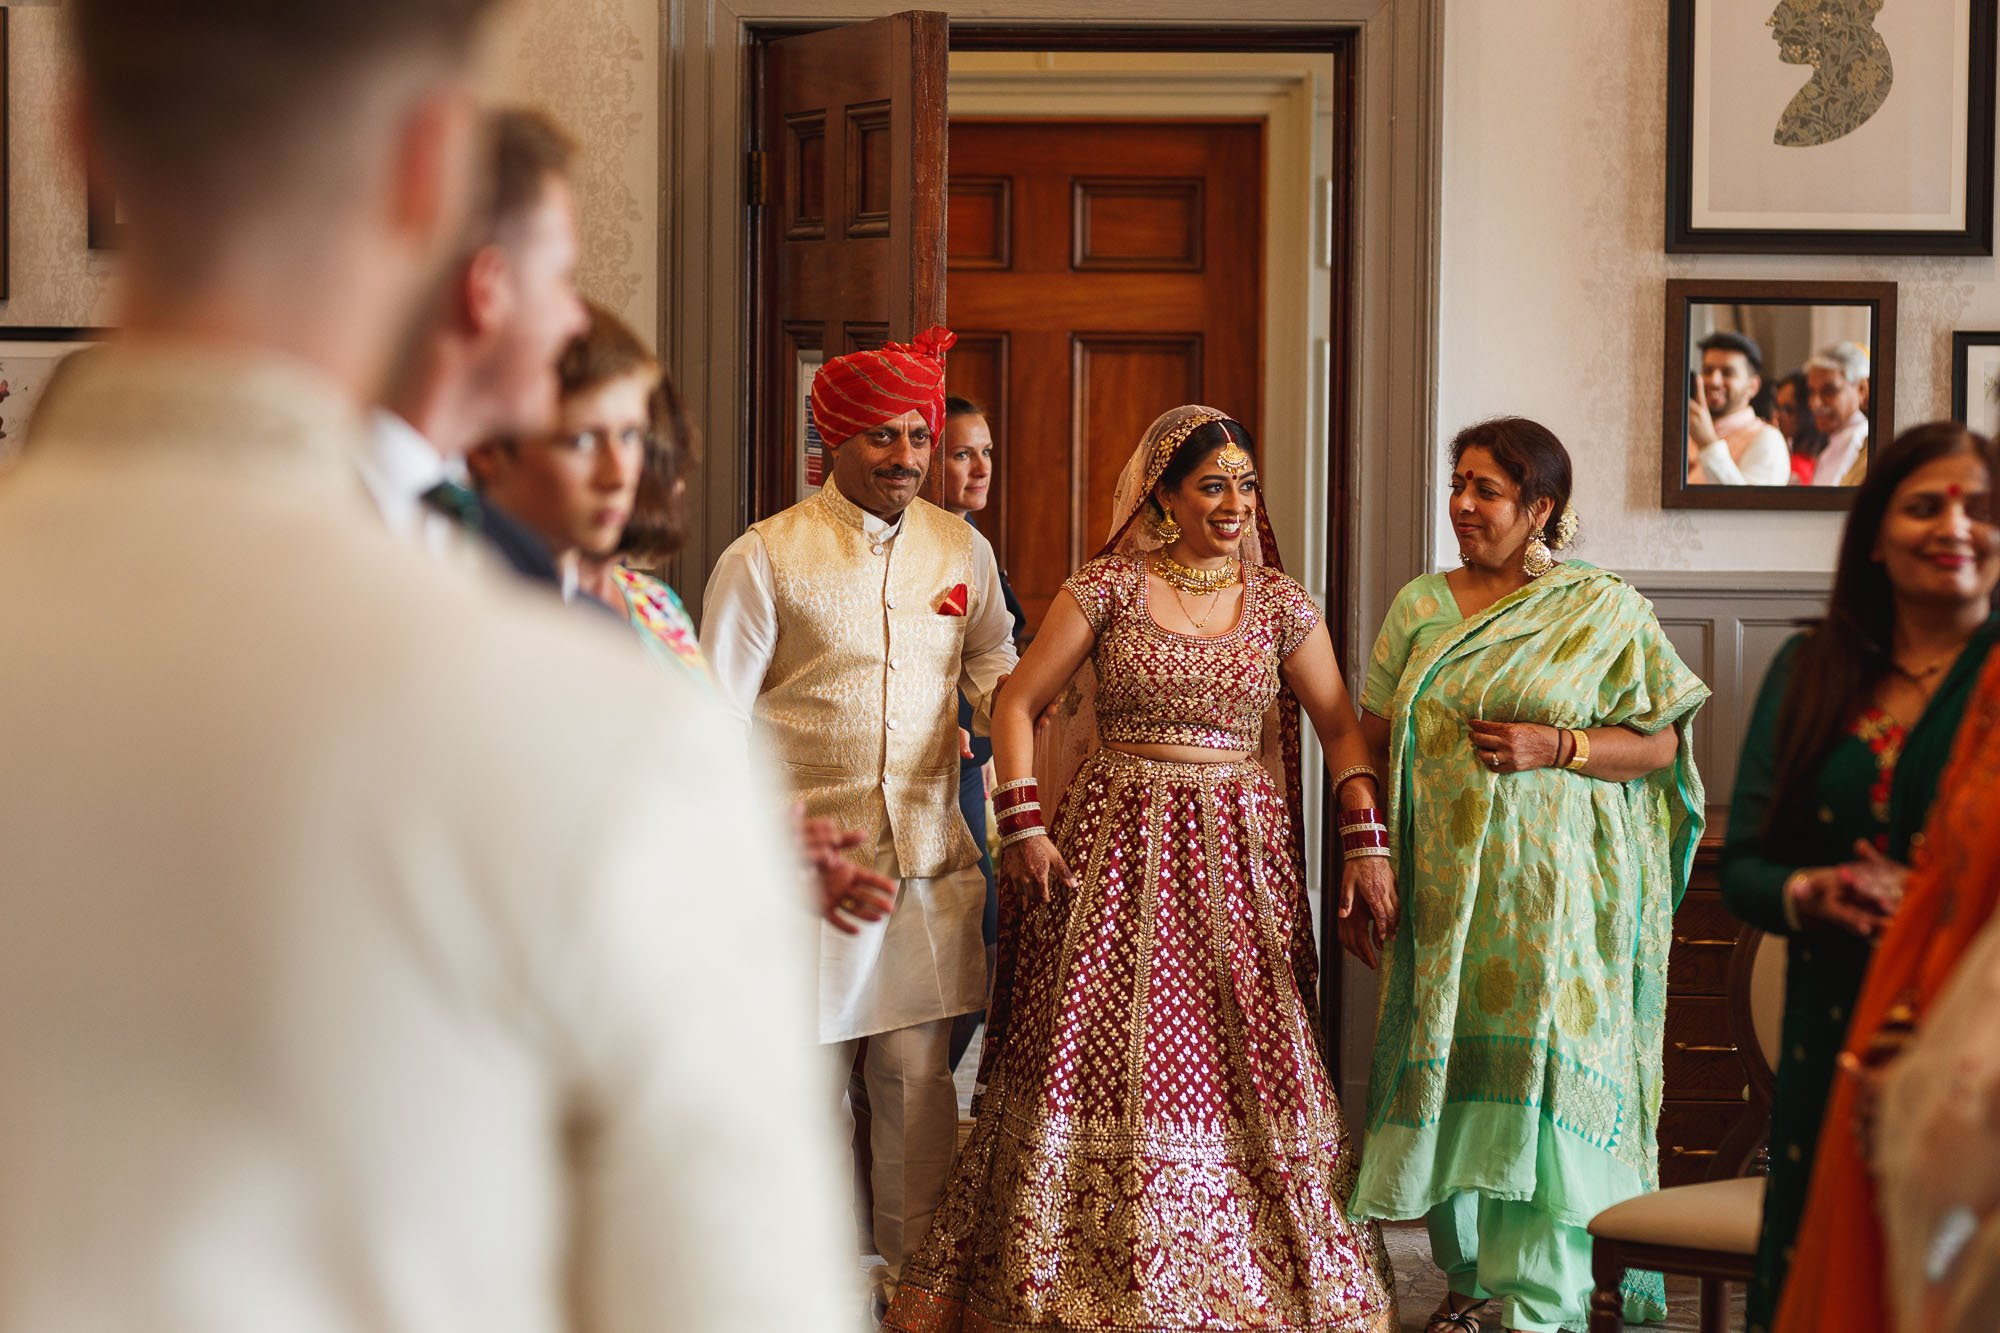 De Vere Wokefield Estate, Asian wedding photographer, bride entrance, civil ceremony